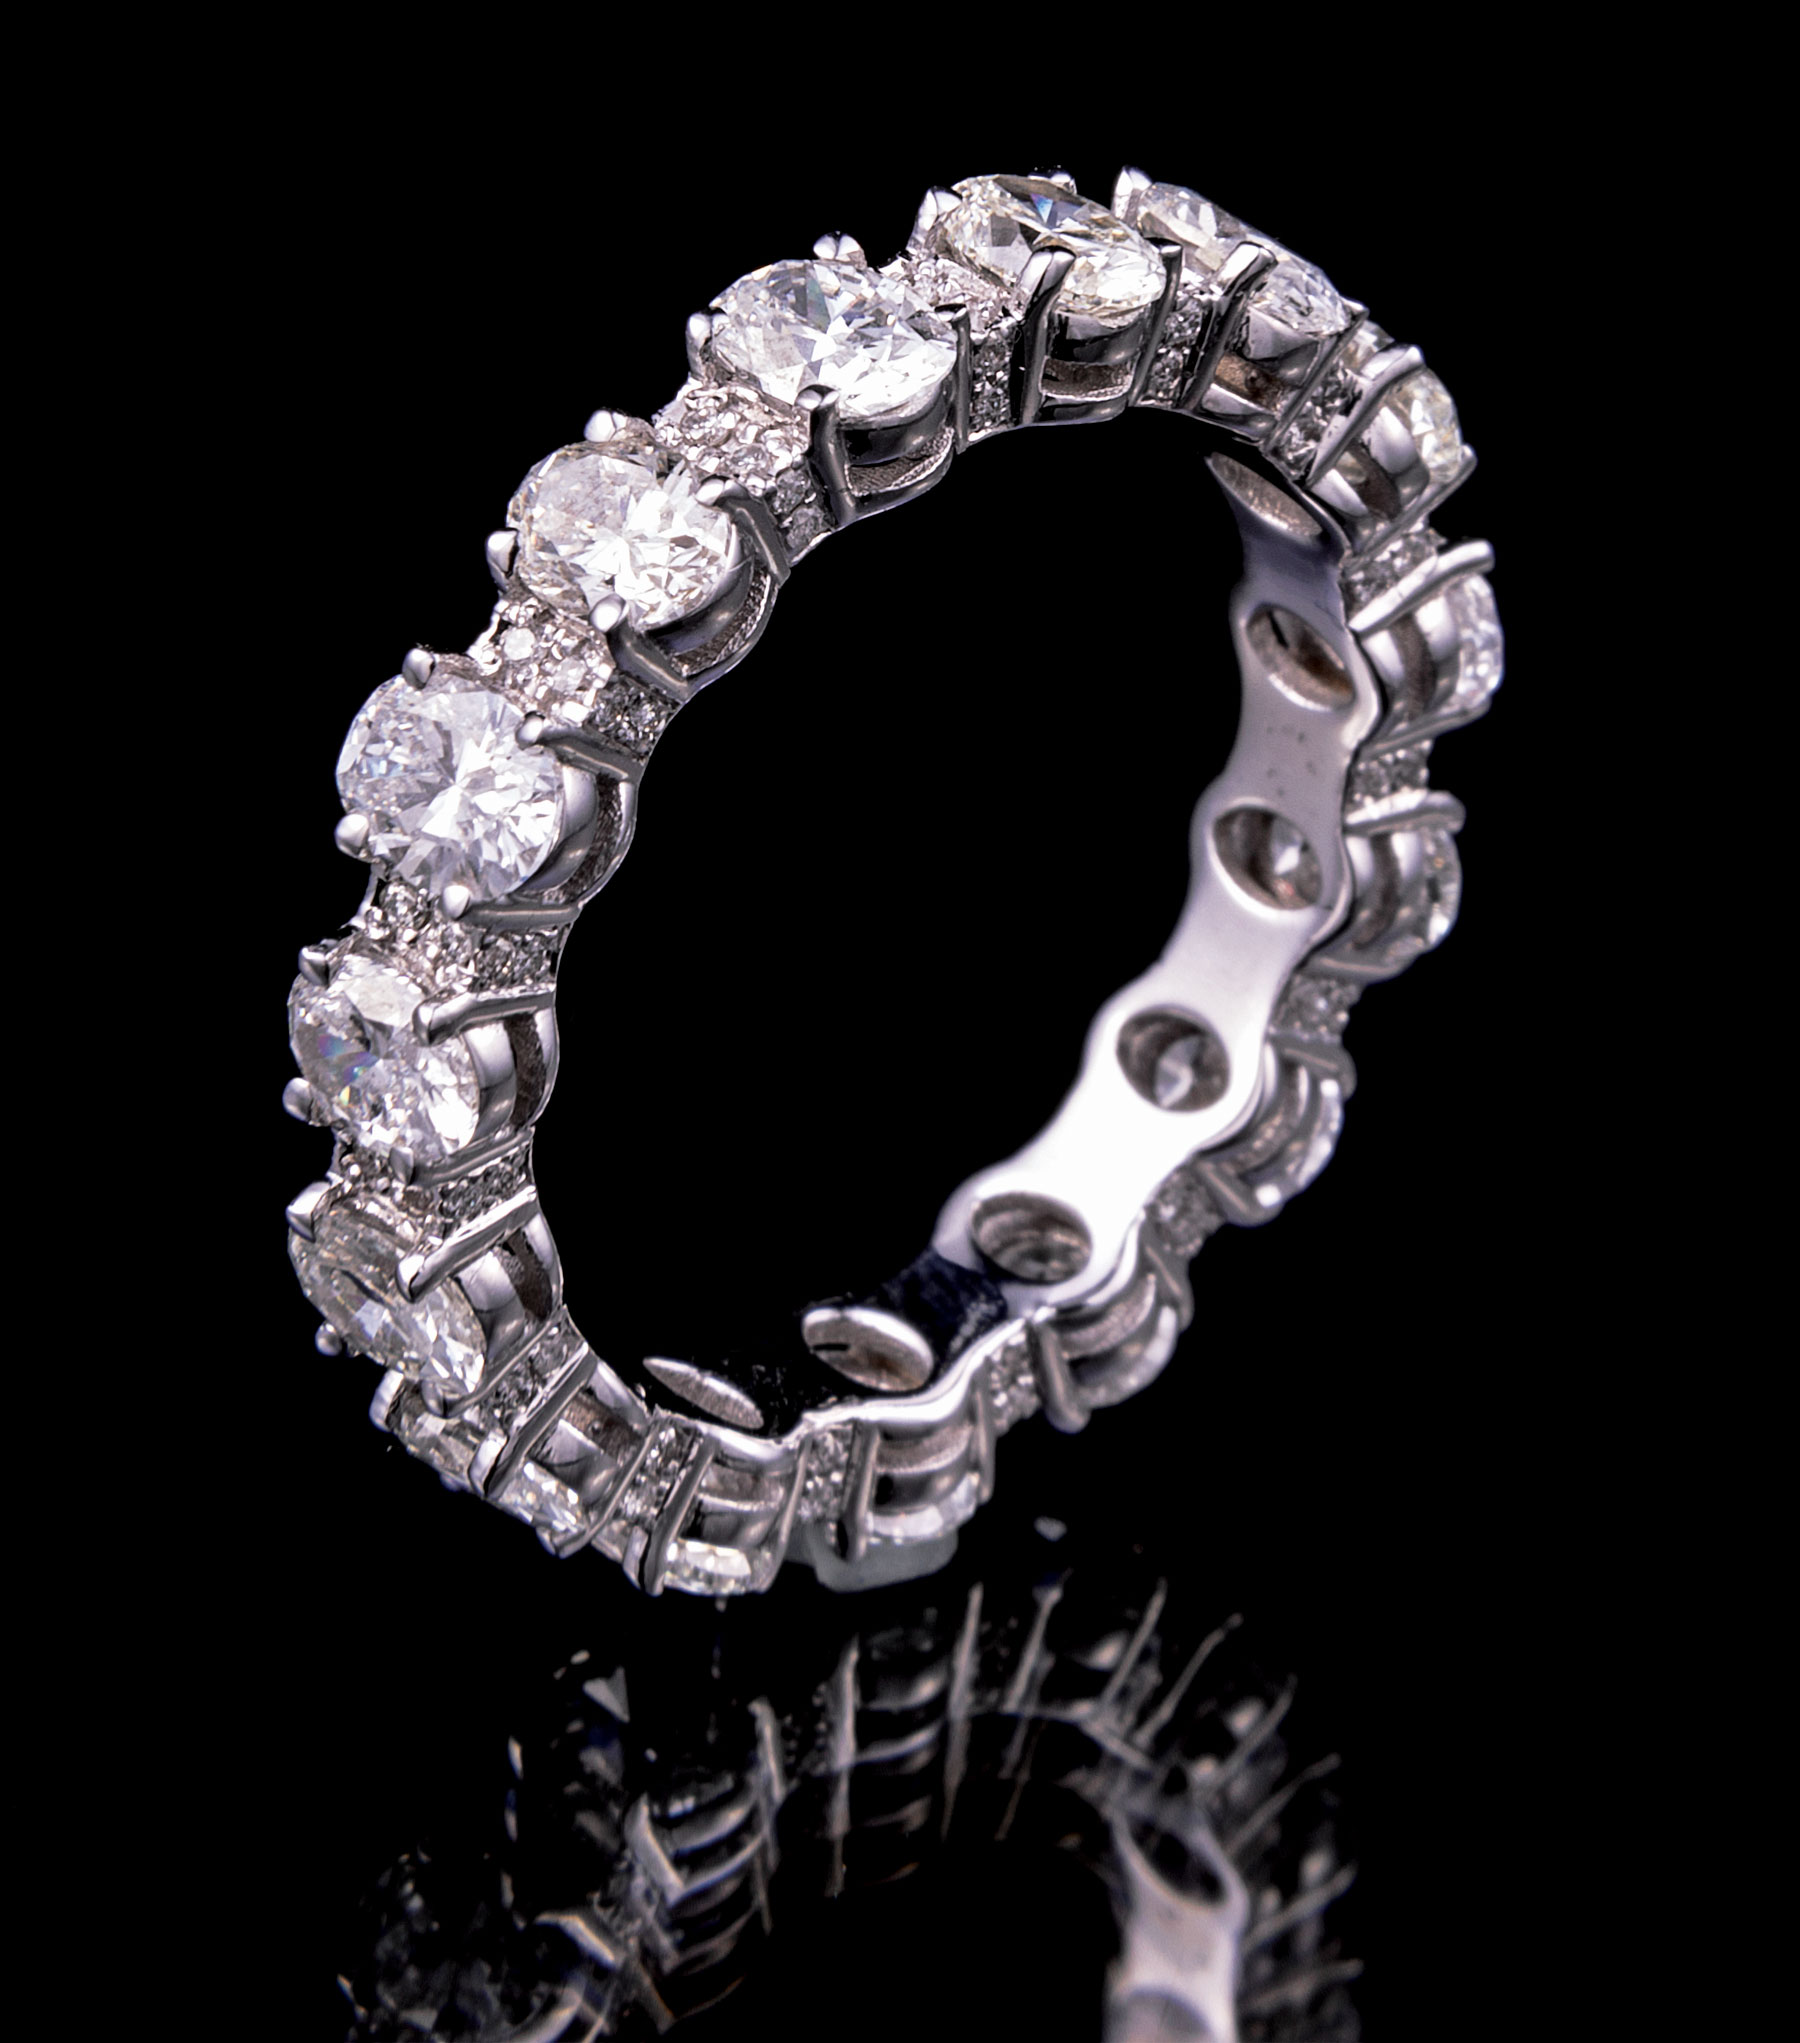 Lot 608 - 18 kt. White Gold and Diamond Eternity Band Ring , incl. 15 oval cut and 15 round brilliant cut